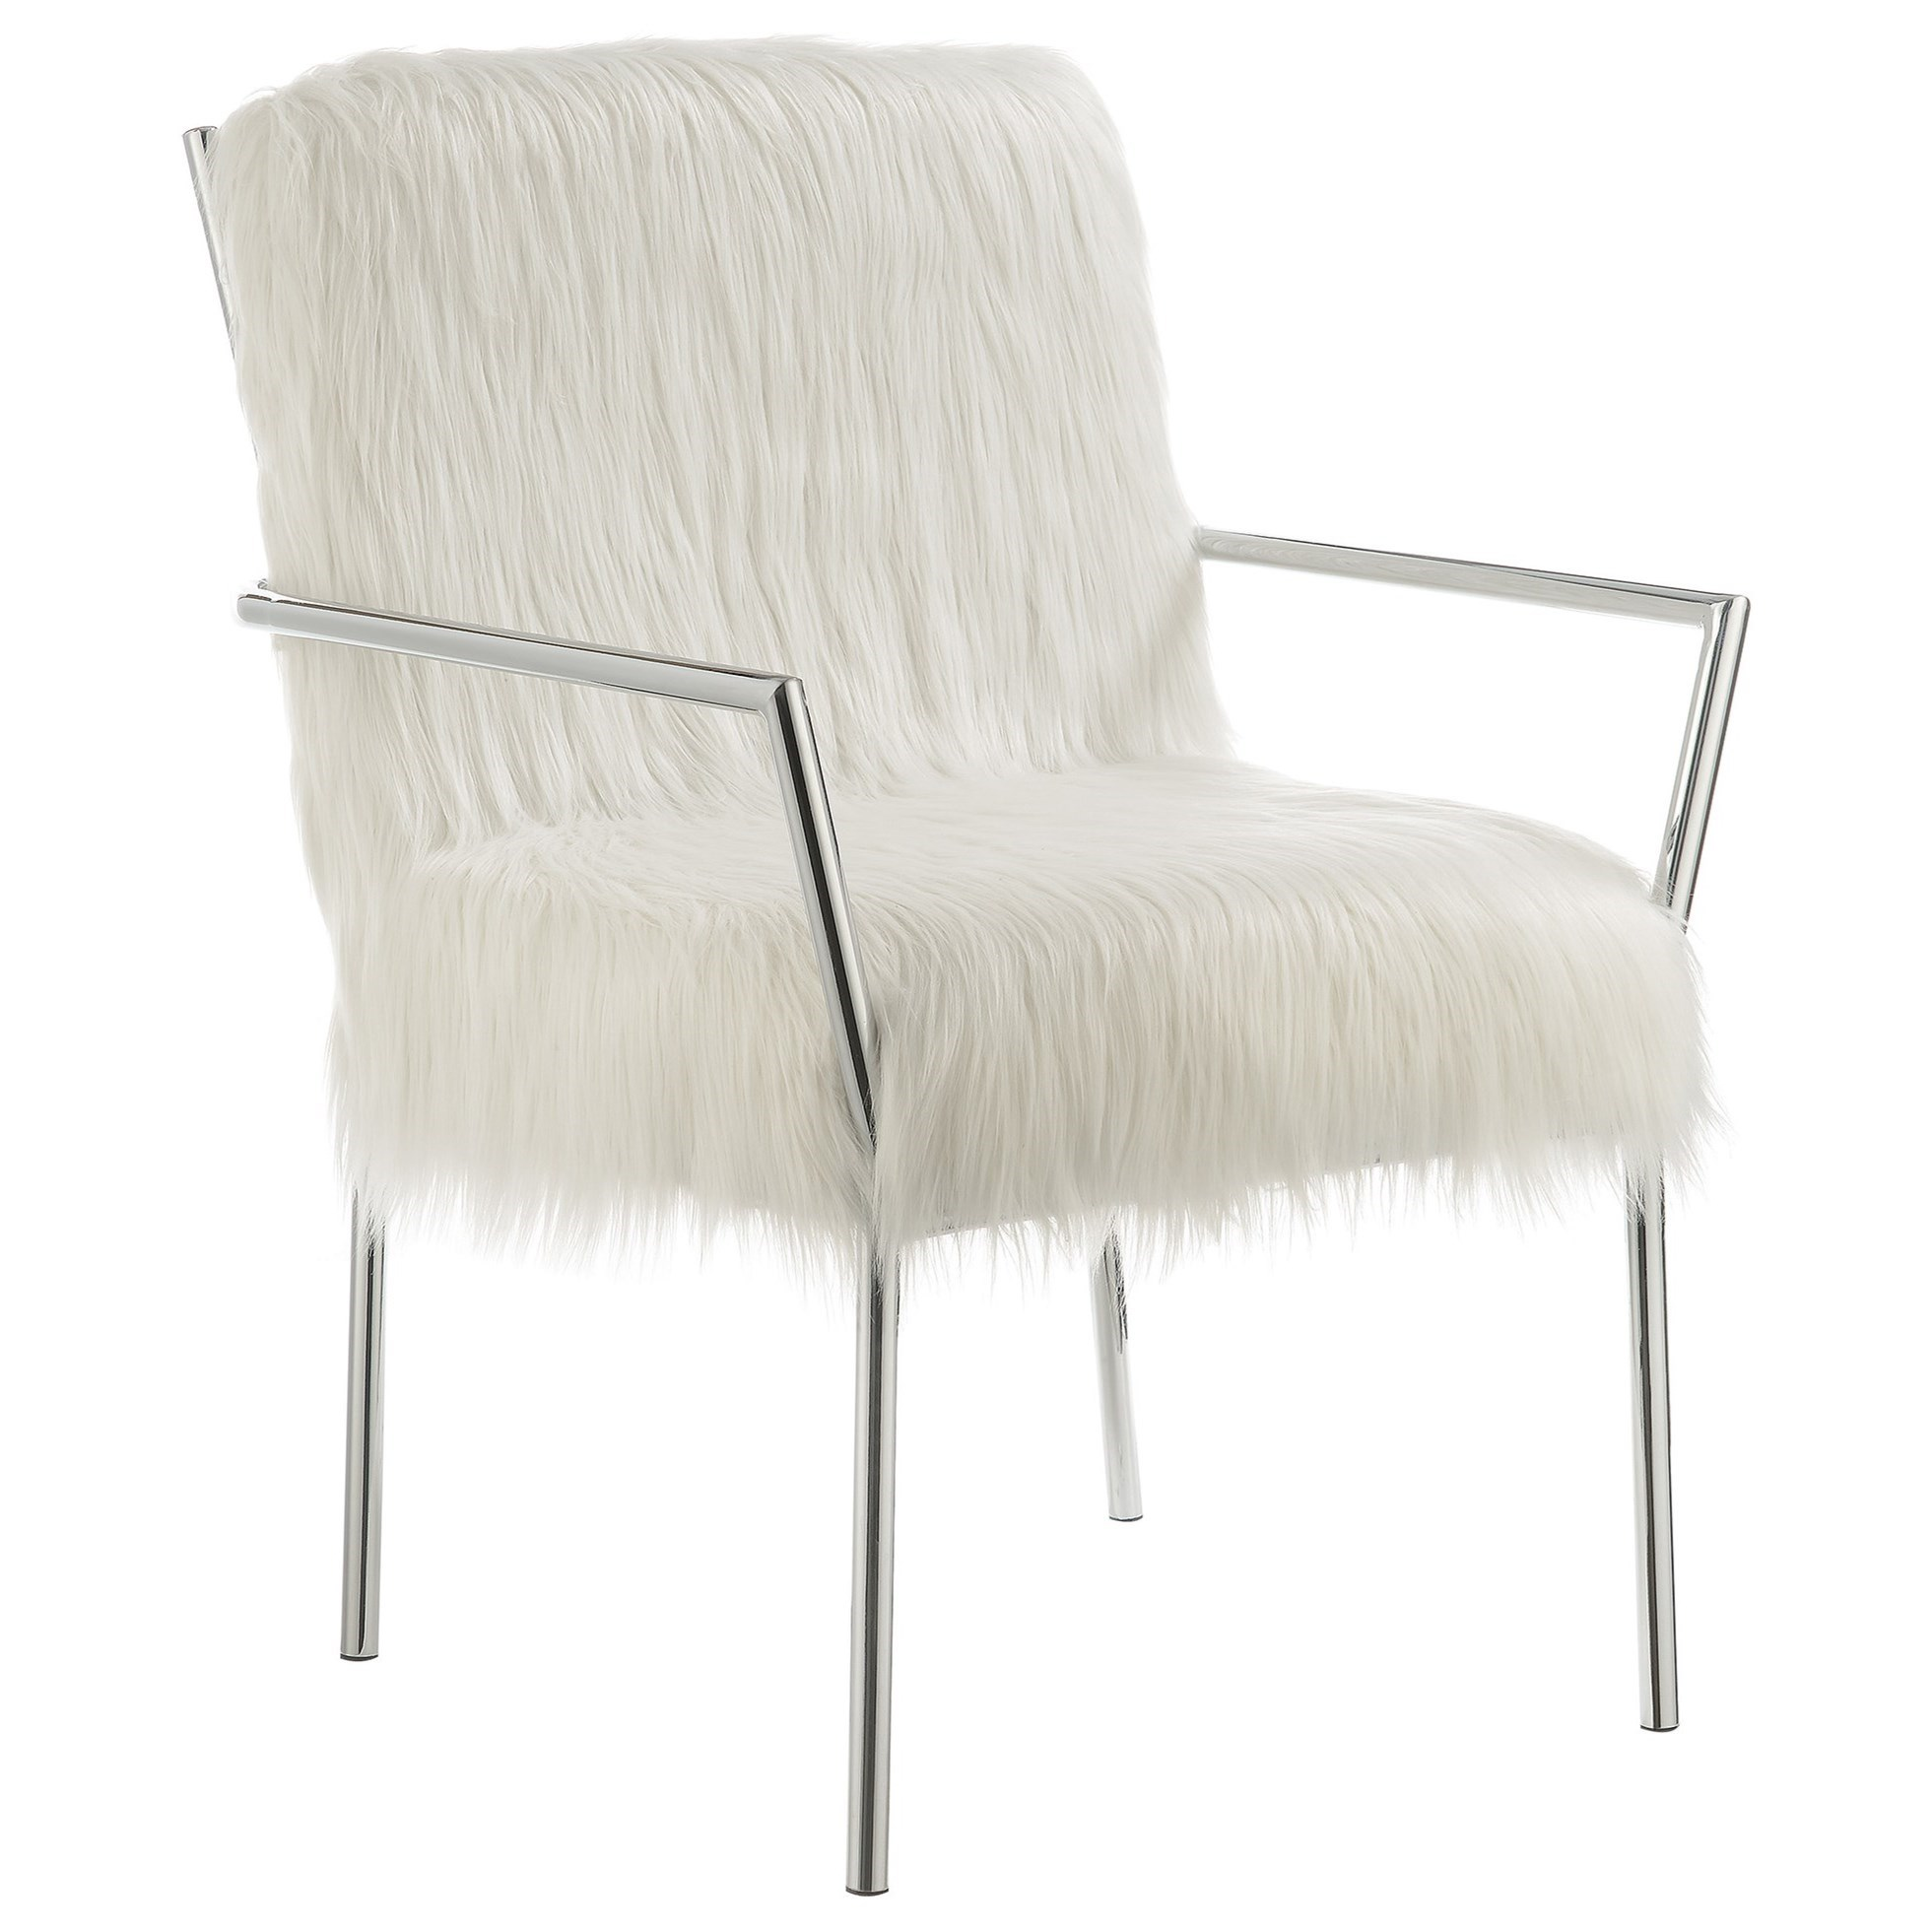 Contemporary Seating Accent Seating Contemporary Accent Chair With Faux Sheepskin By Coaster At Sam Levitz Furniture